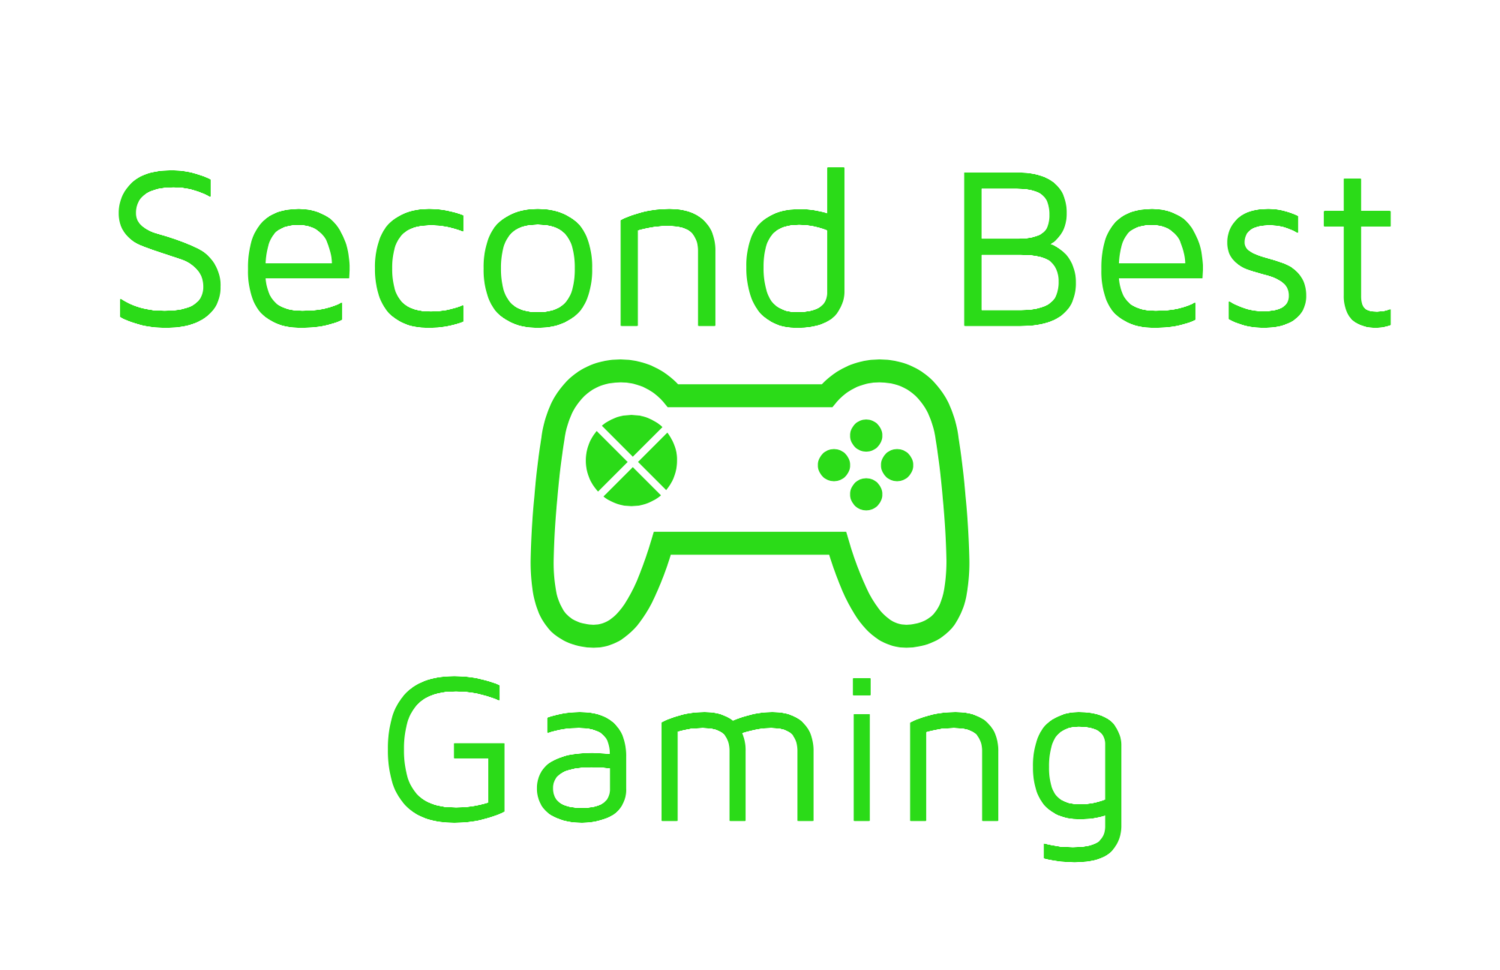 Second Best Gaming